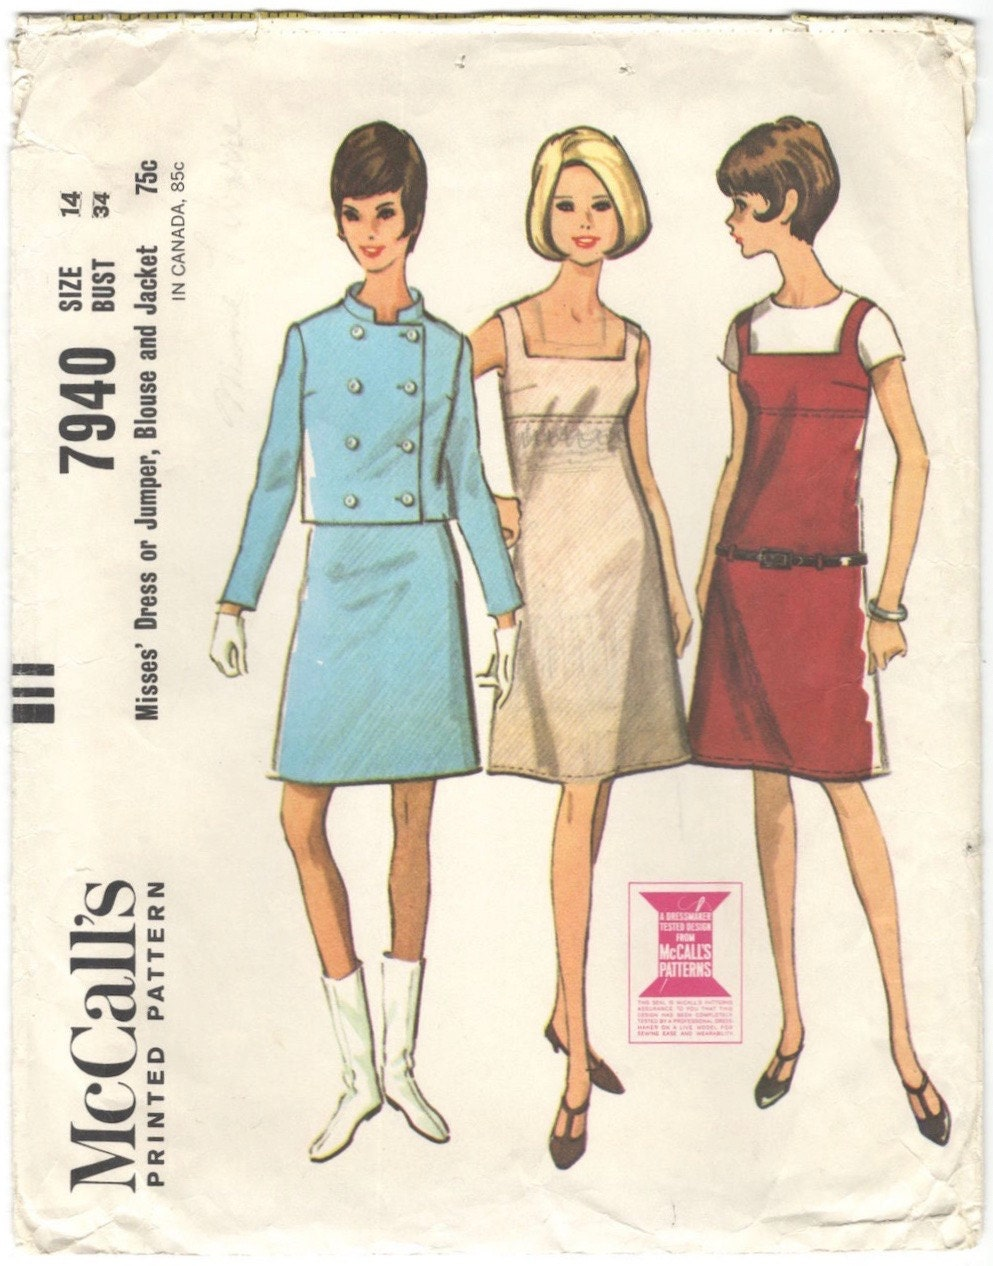 1960s dress or jumper, blouse and jacket pattern after Courrèges - McCall's 7940